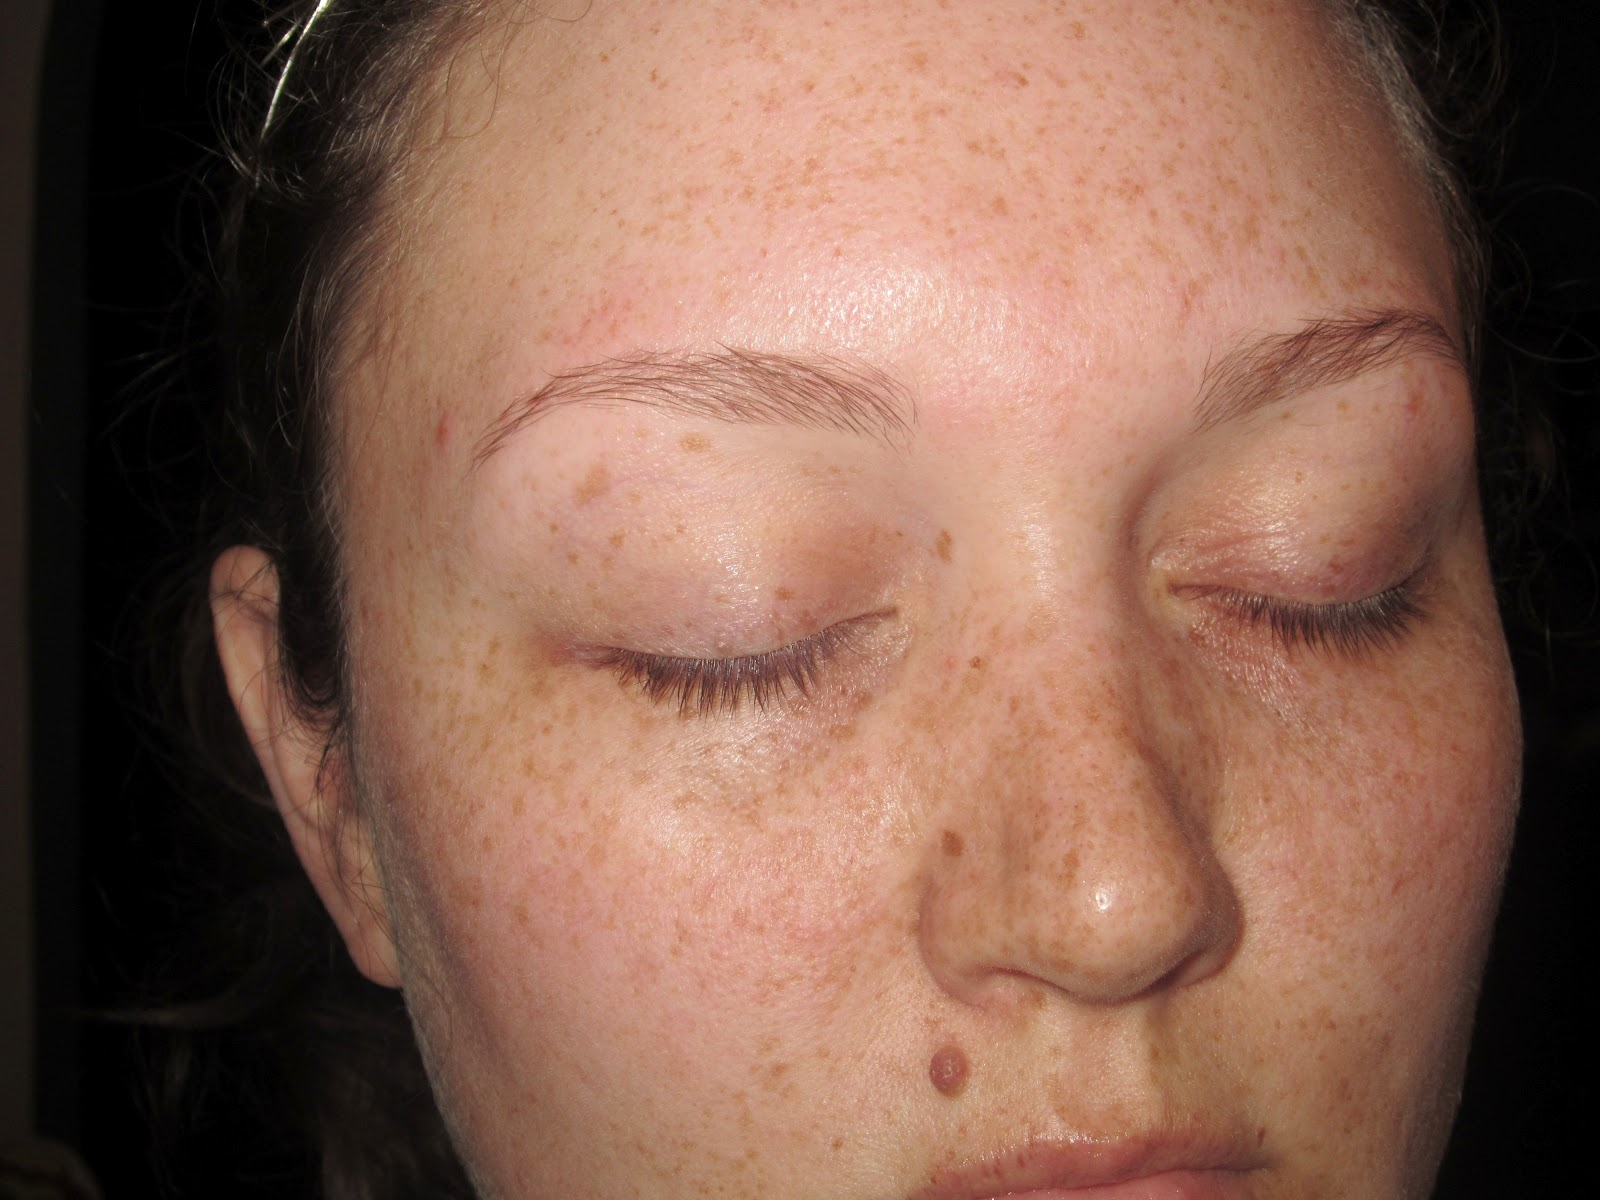 The above photo is before any makeup and after I had applied a light moisturizer. I have some dry trouble spots on my face and I like to use a moisturizing ...